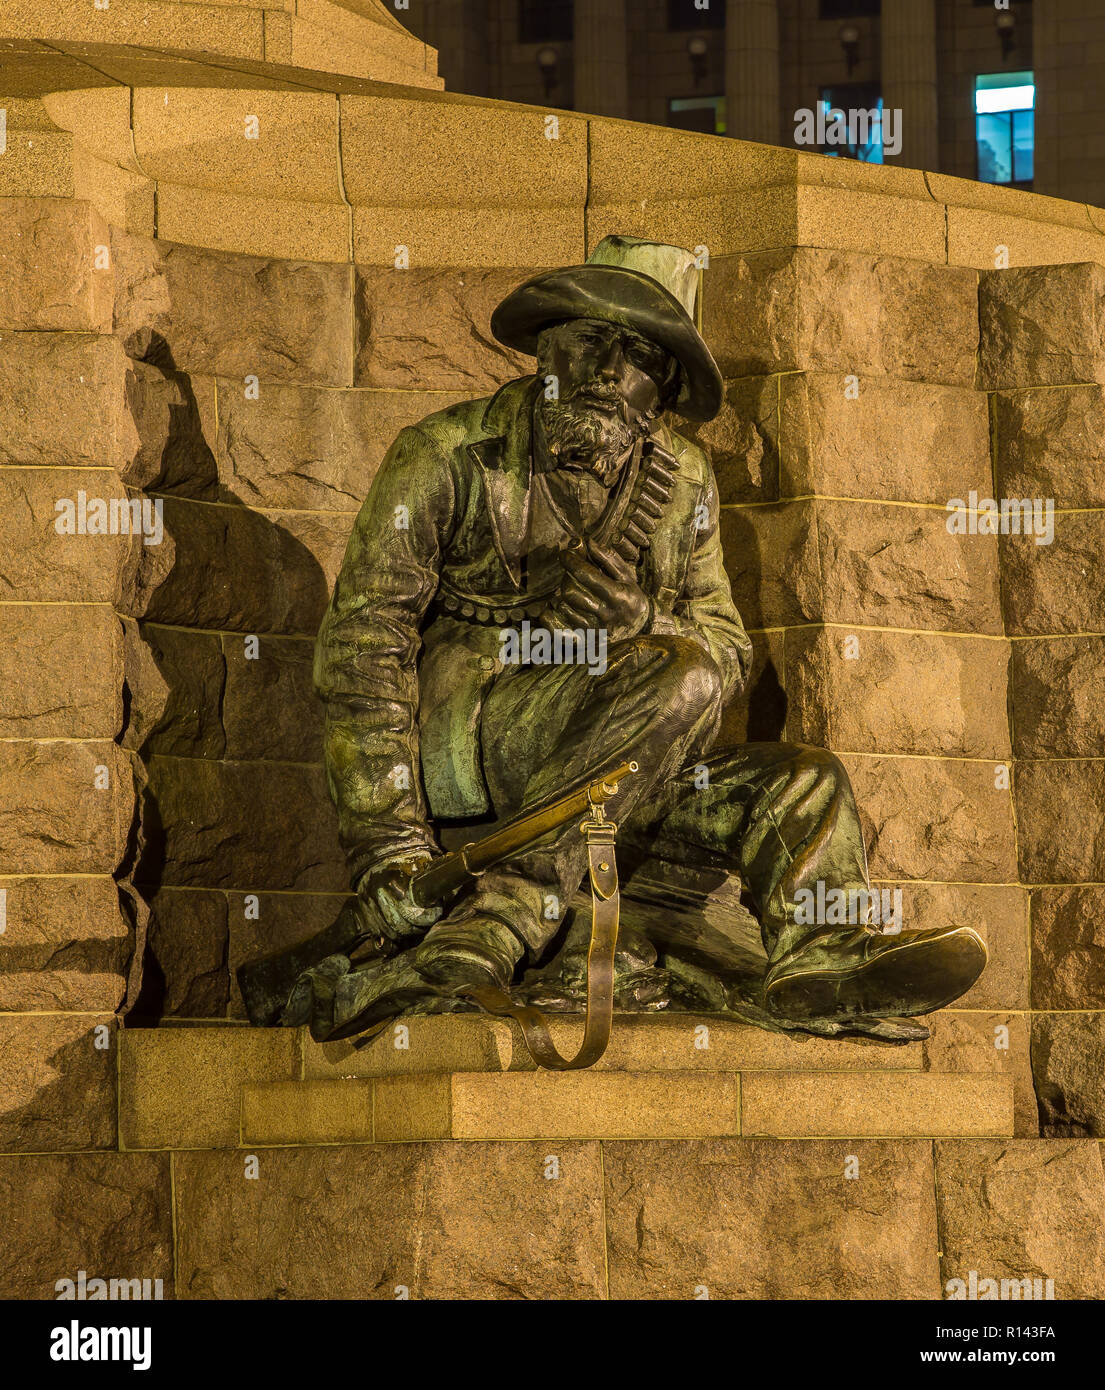 Statue of Boer General at the foot of the Paul Kruger monument on Church Square, Pretoria, South Africa. - Stock Image